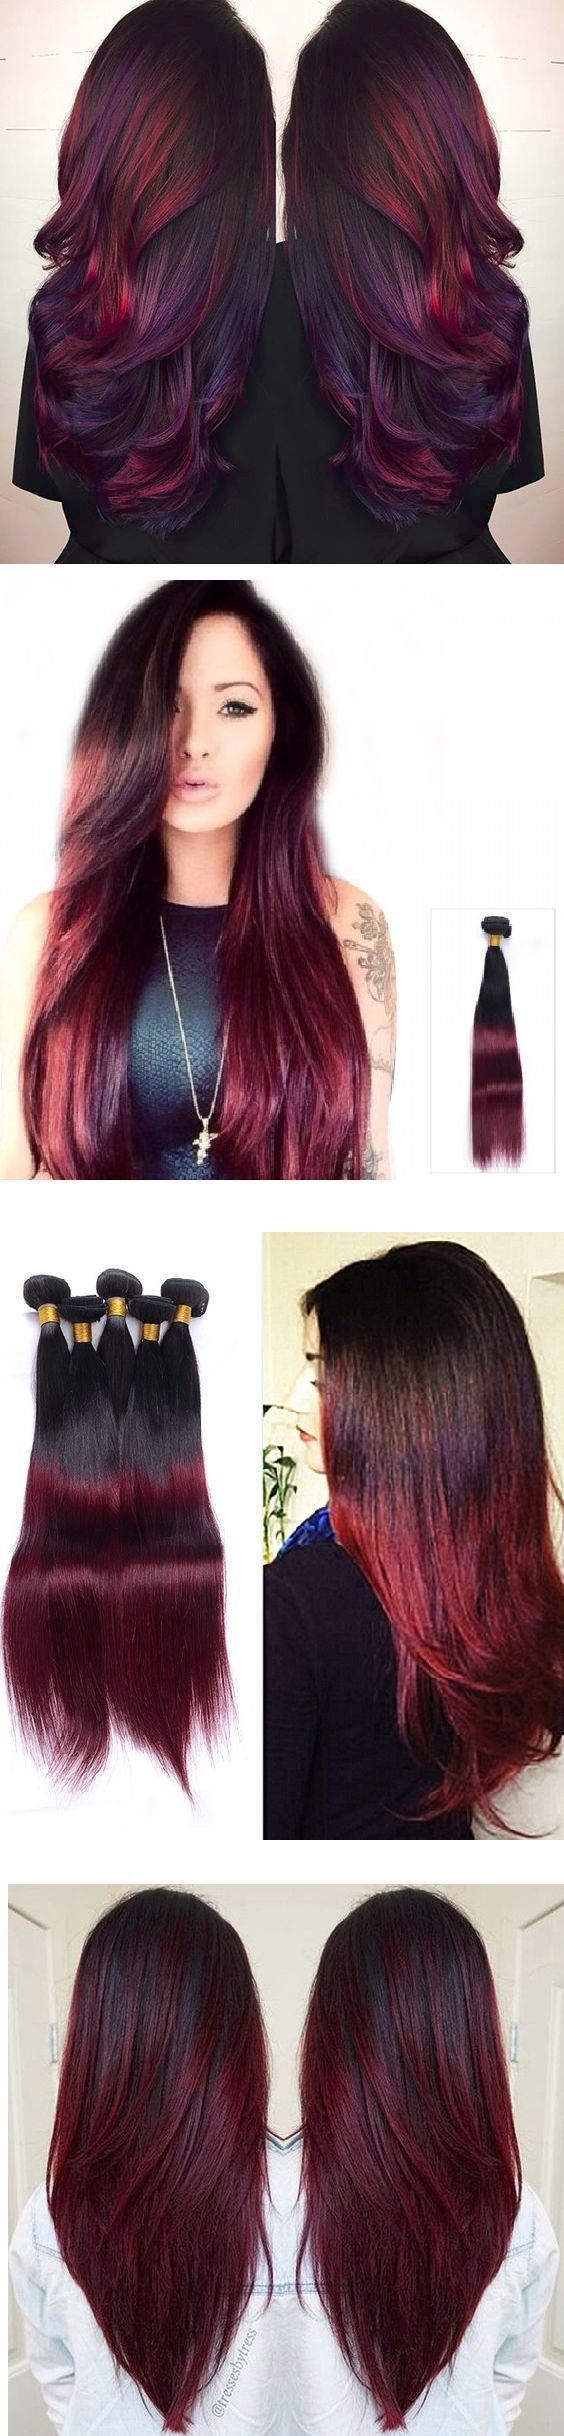 Long Two Tone Red Wig Red Hair Extensions Red Wigs And Mesh Cap